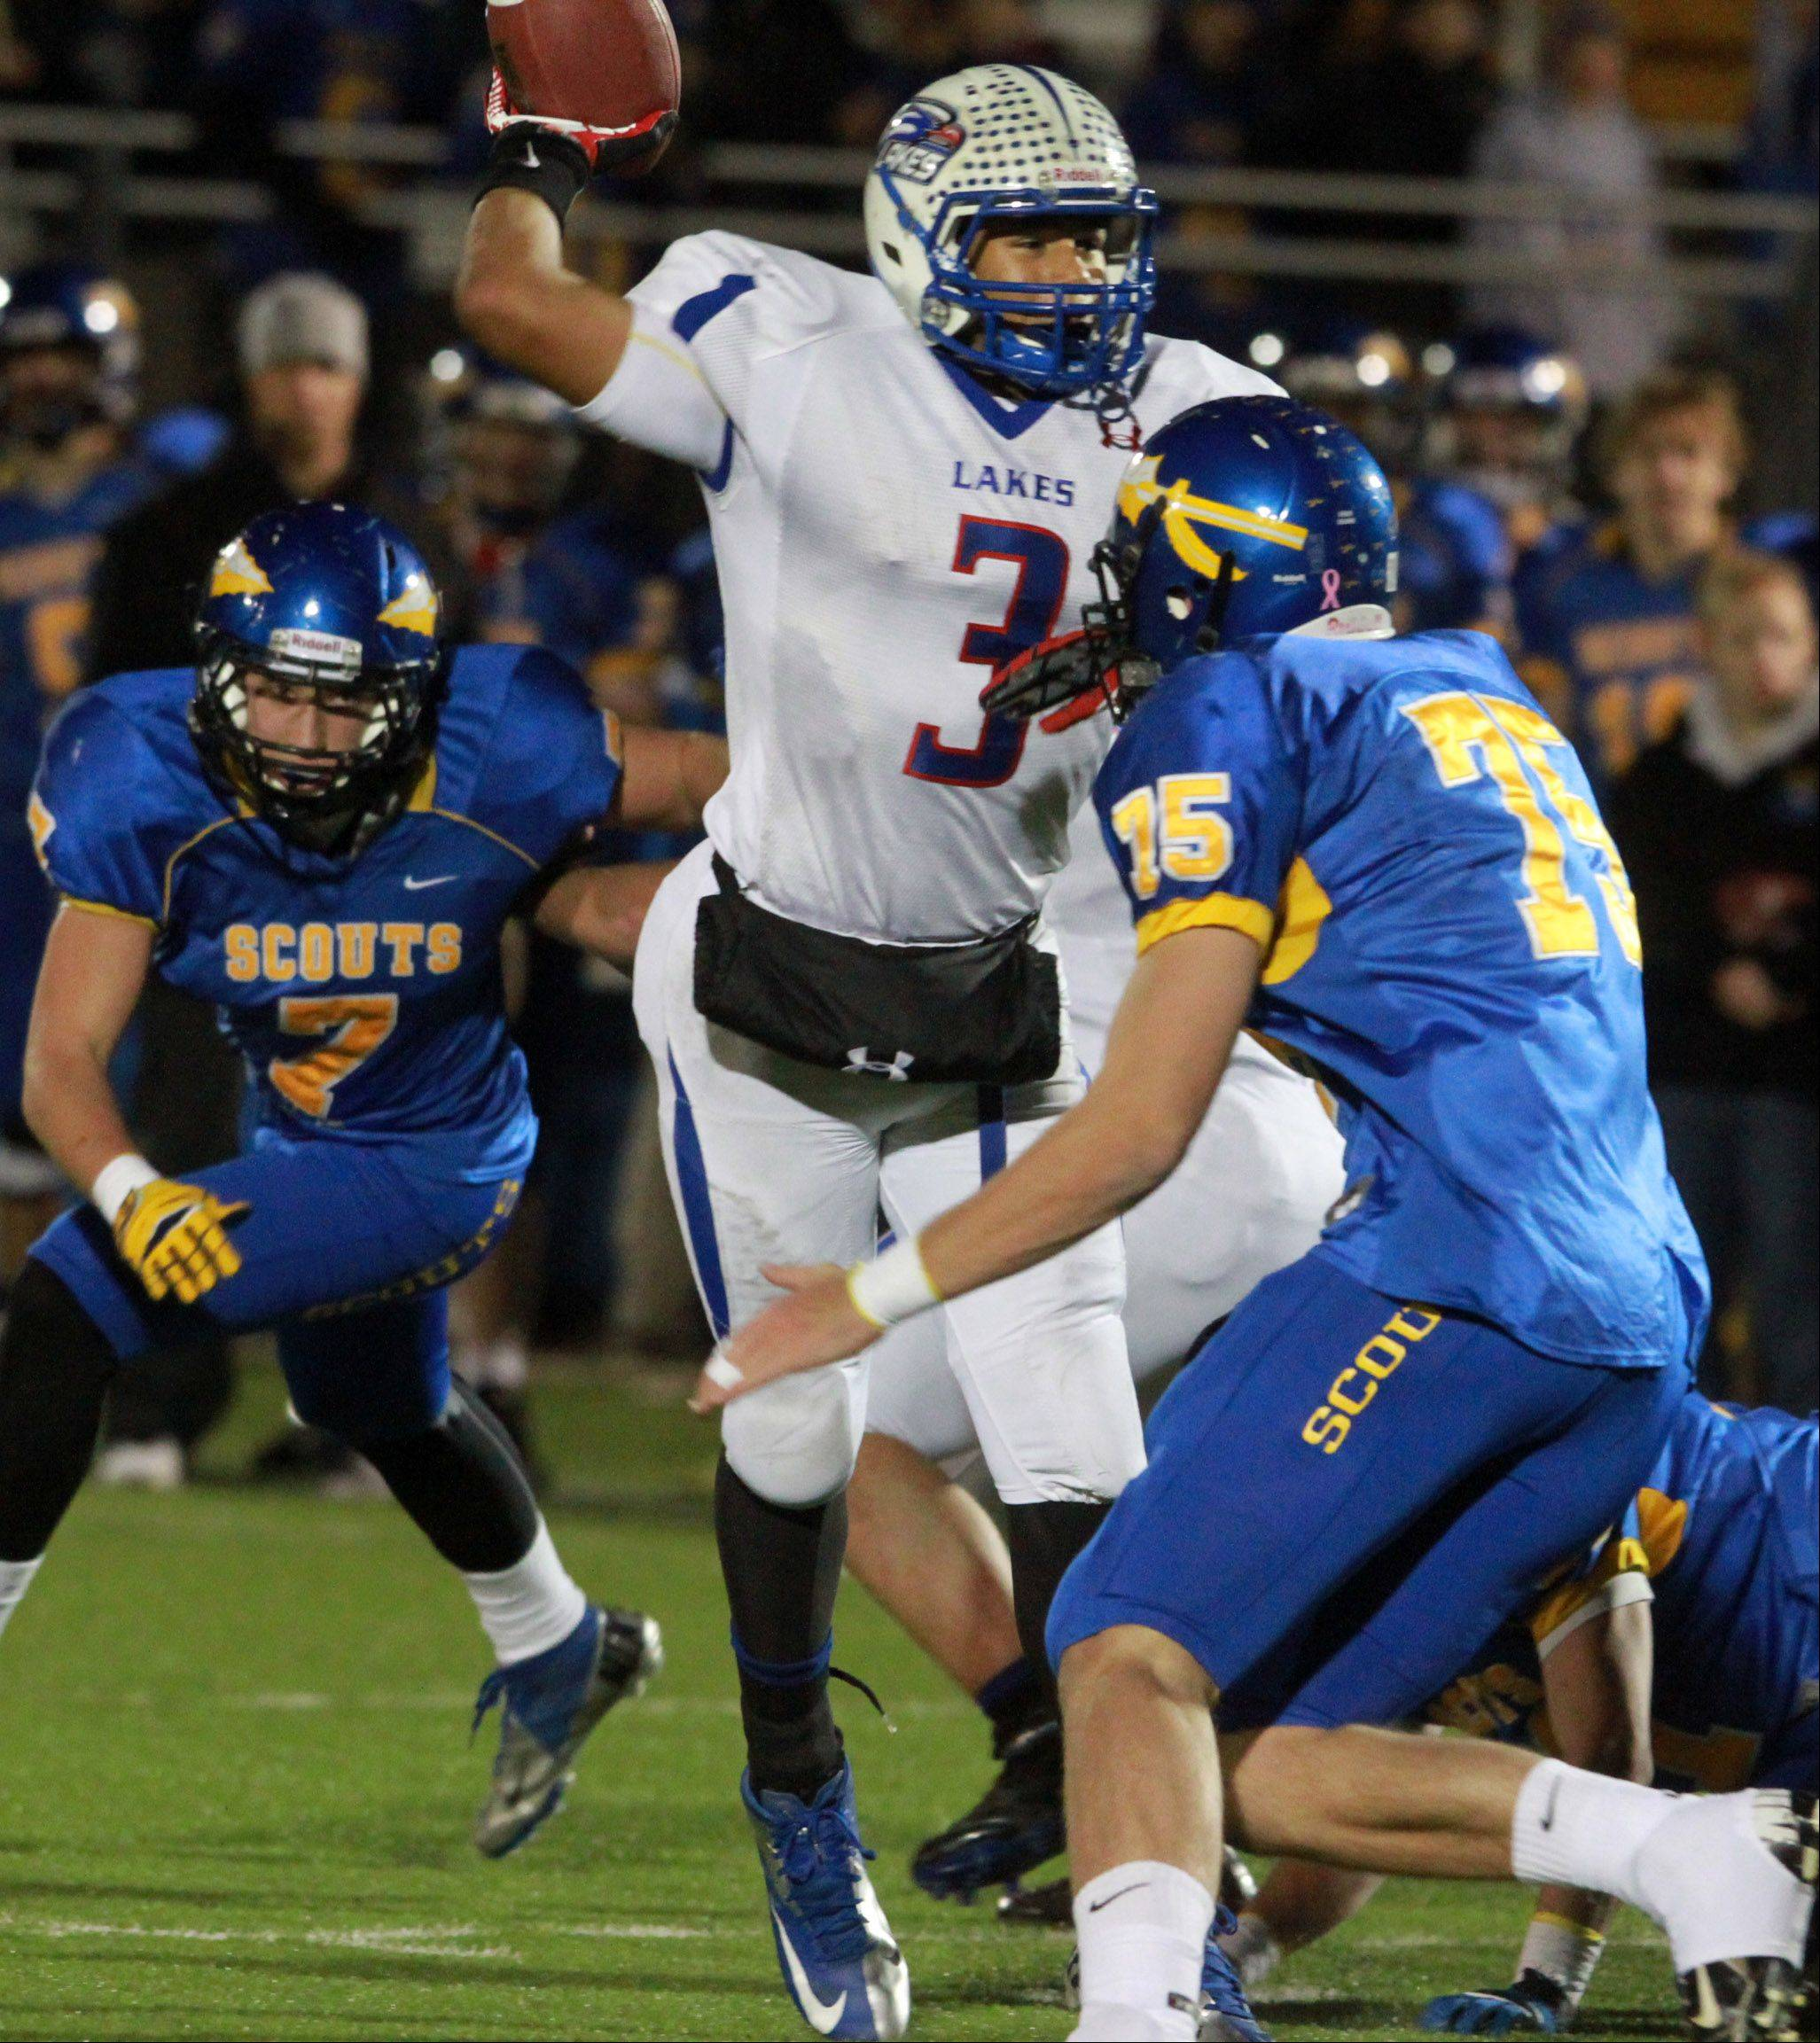 Lakes quarterback passes under rush by two Lake Forest defenders at Lake Forest in round two of Class 6A state playoffs on Friday, Nov. 2.